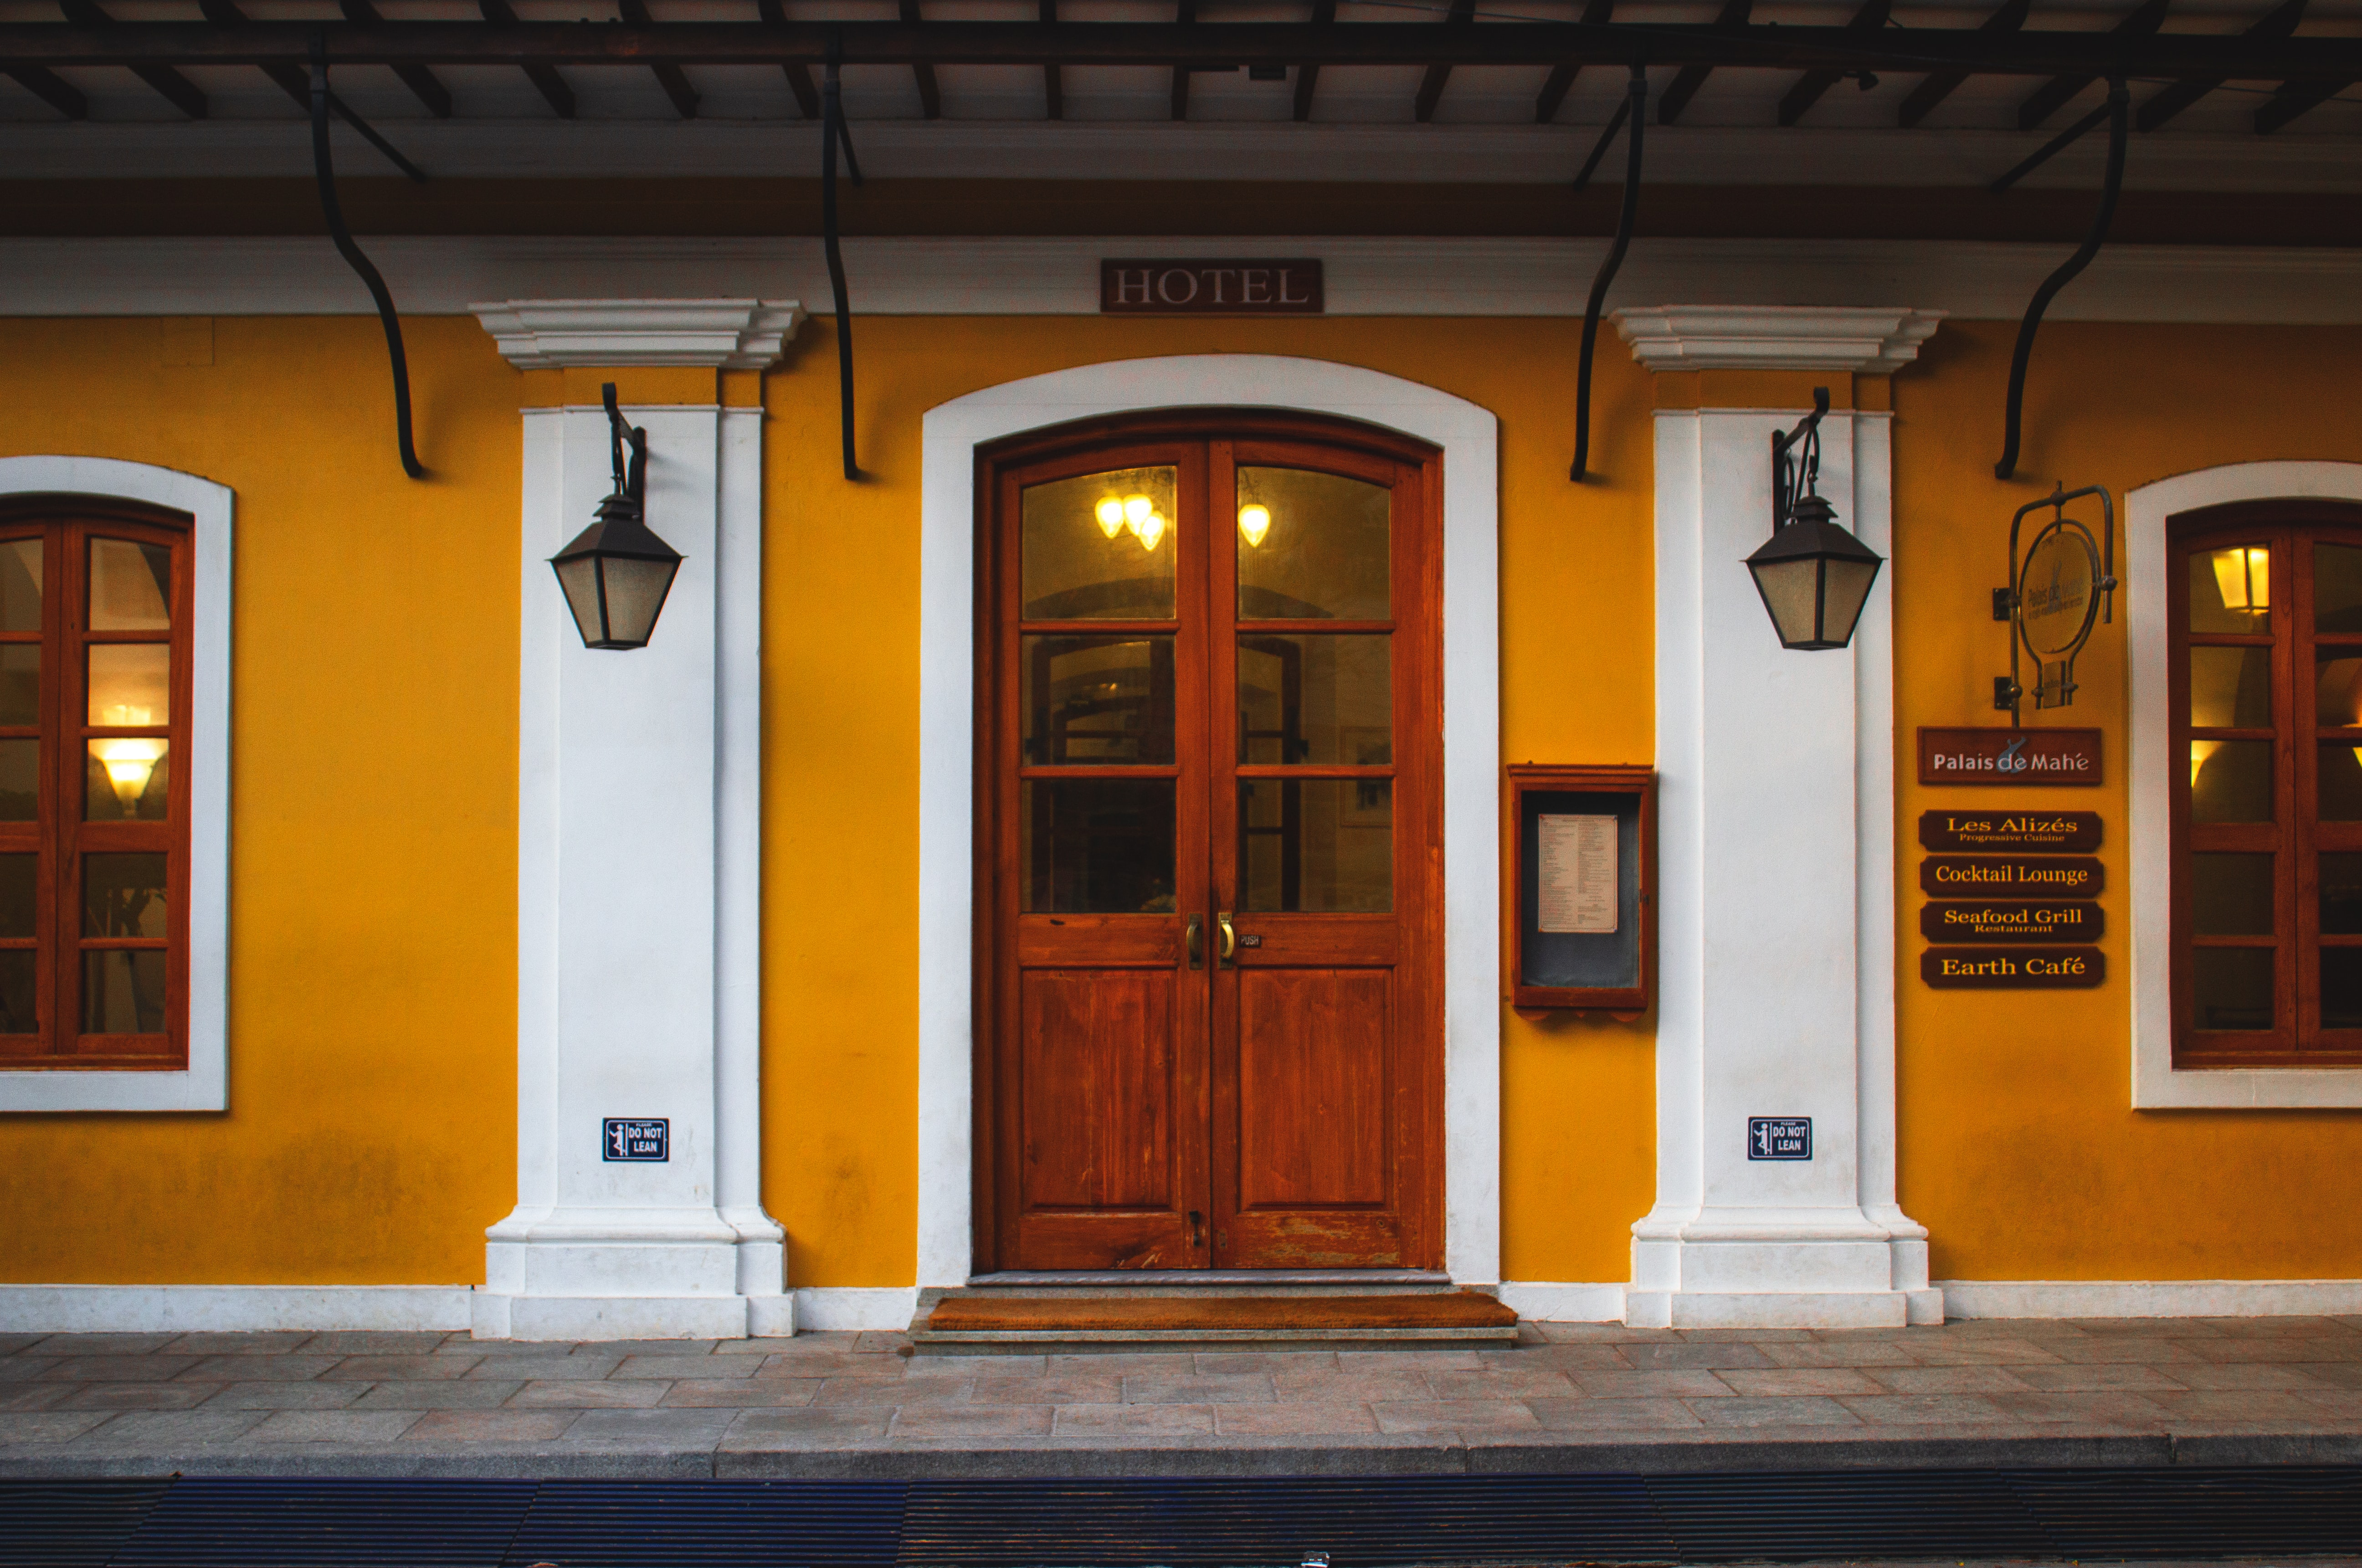 Portuguese style hotel in Ponicherry, Places to visit in Pondicherry